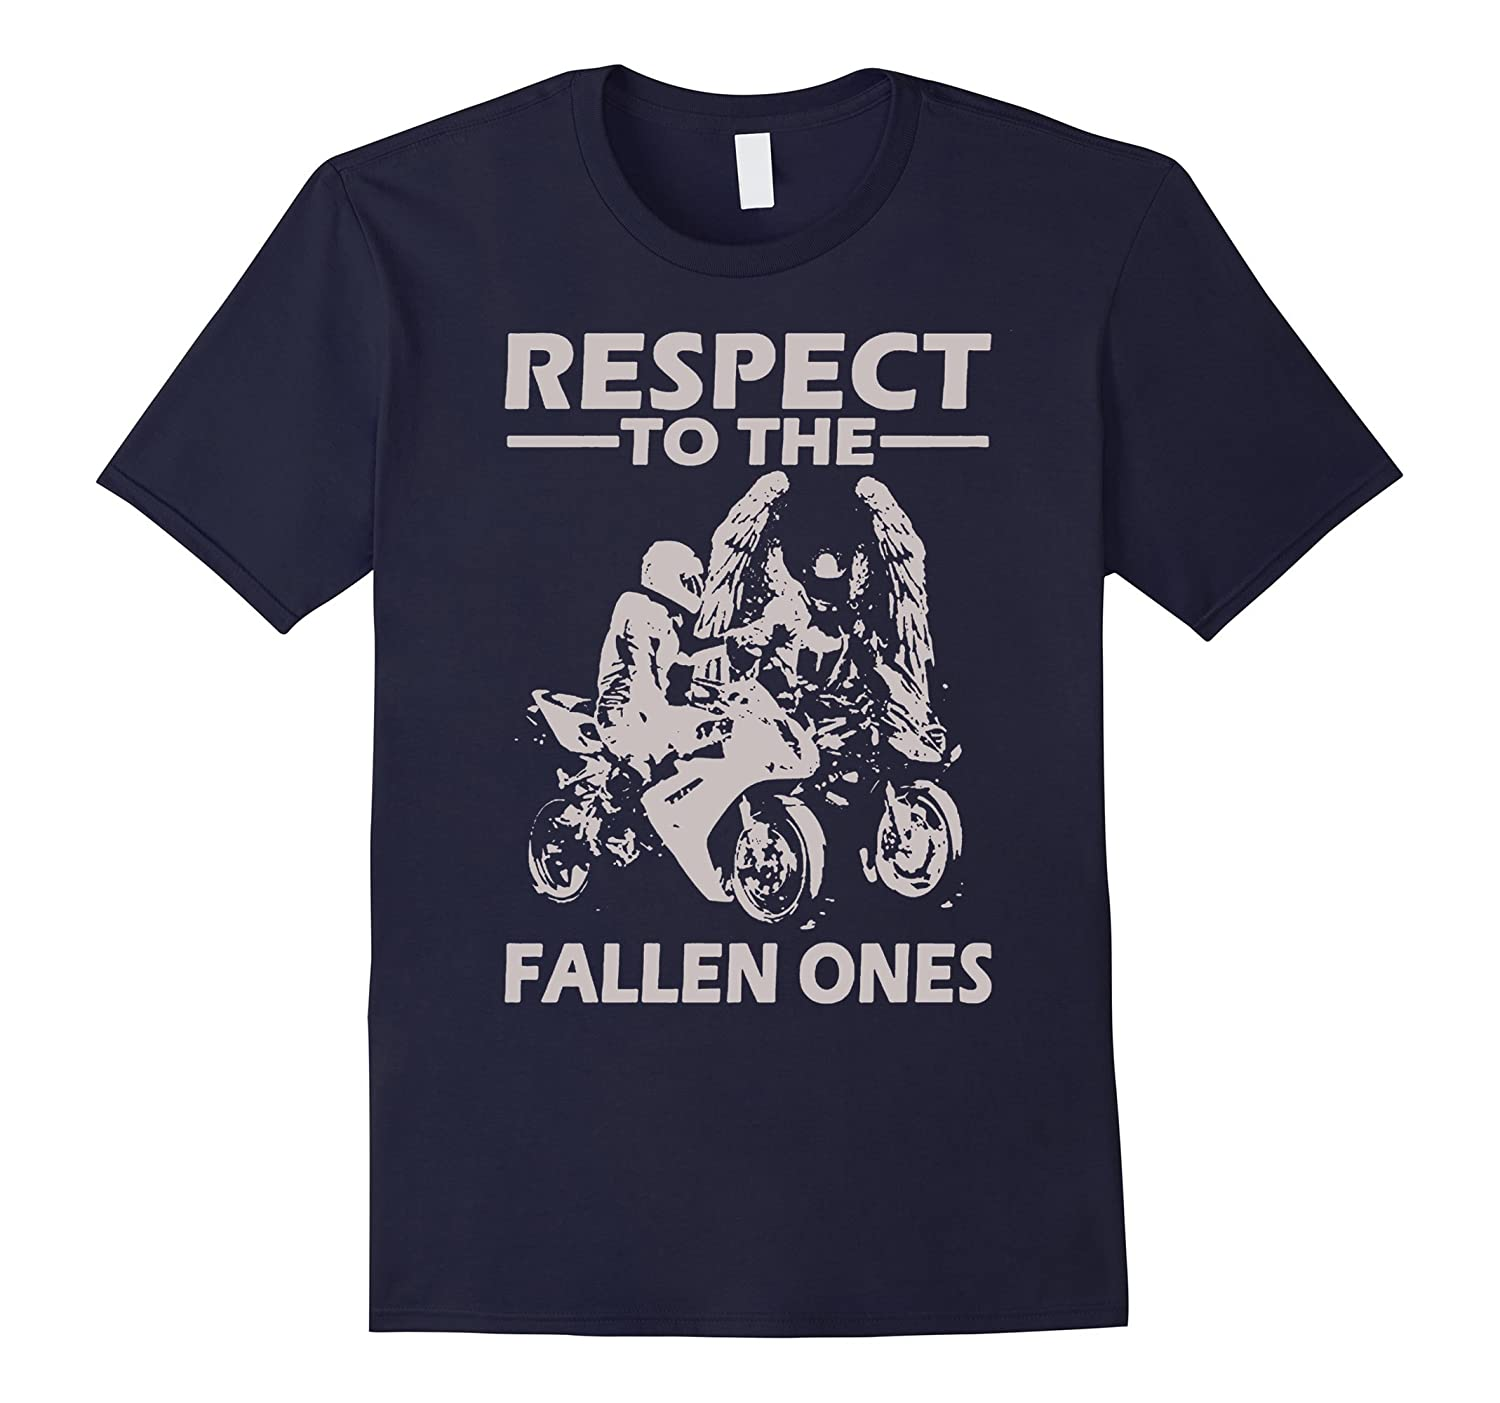 Respect To The Fallen Ones TShirts - Hight Quality-RT